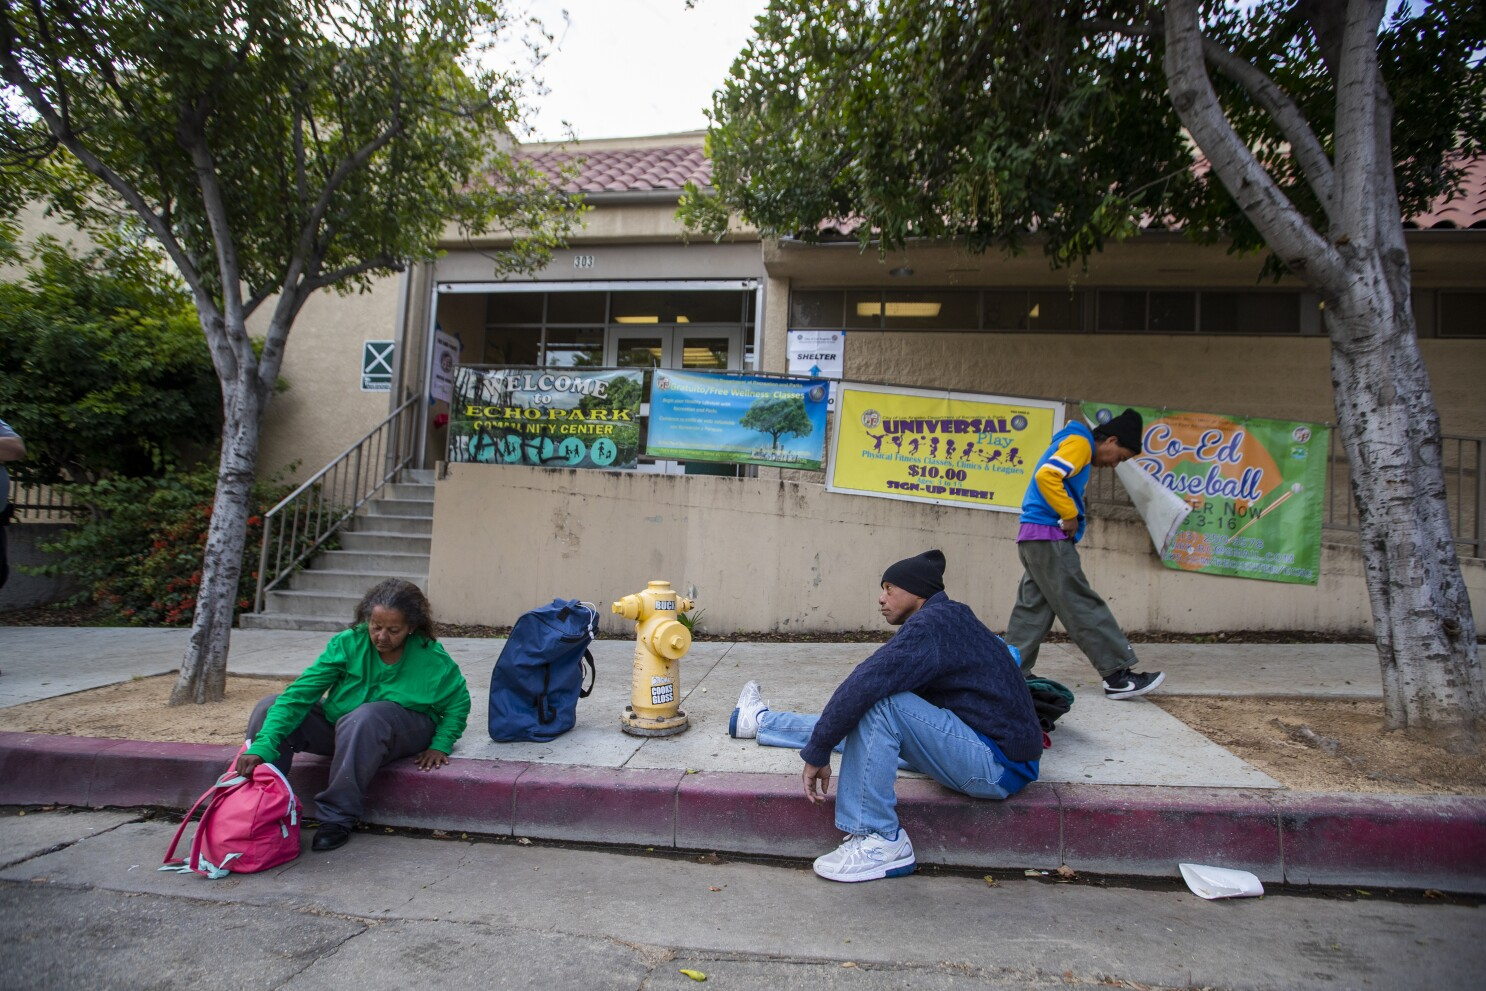 Before coronavirus hits, California scrambles to shelter homeless - Los  Angeles Times